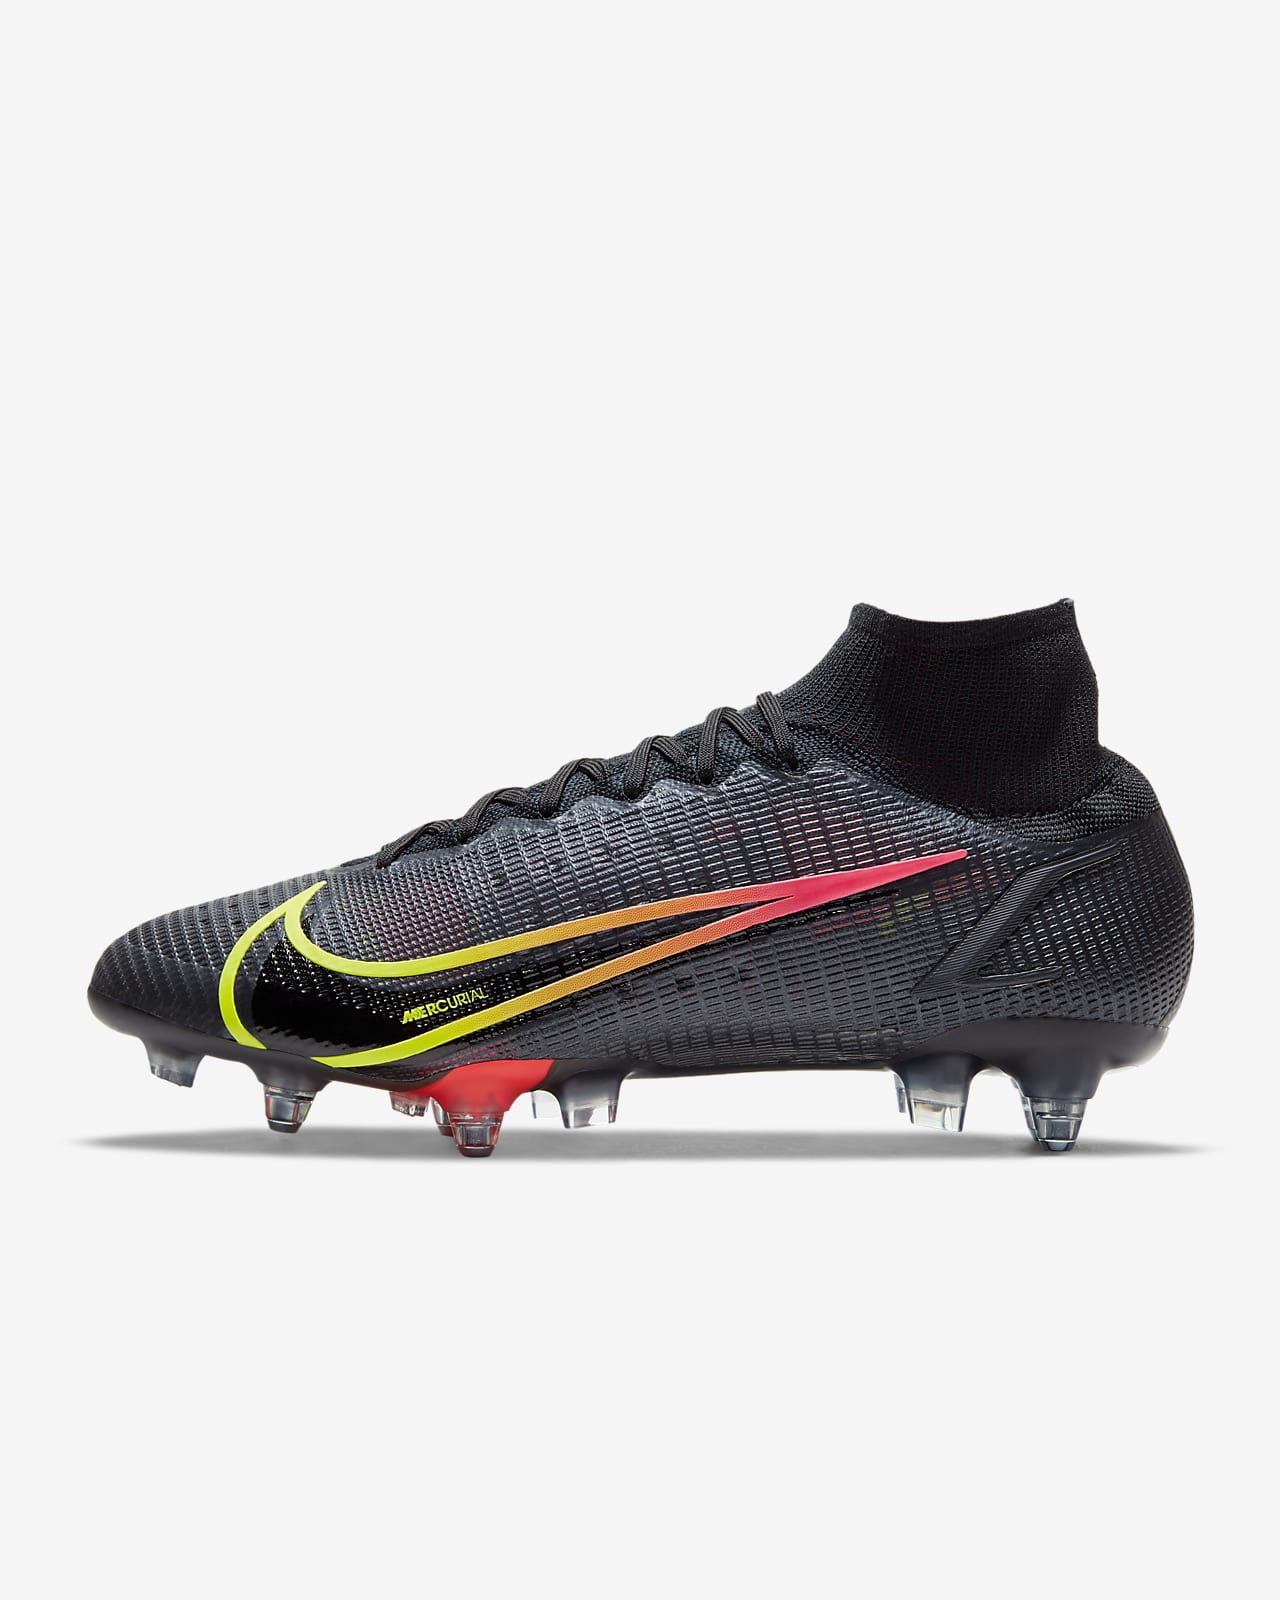 Nike Mercurial Superfly 8 Elite SG-Pro AC Soft-Ground Football Boot